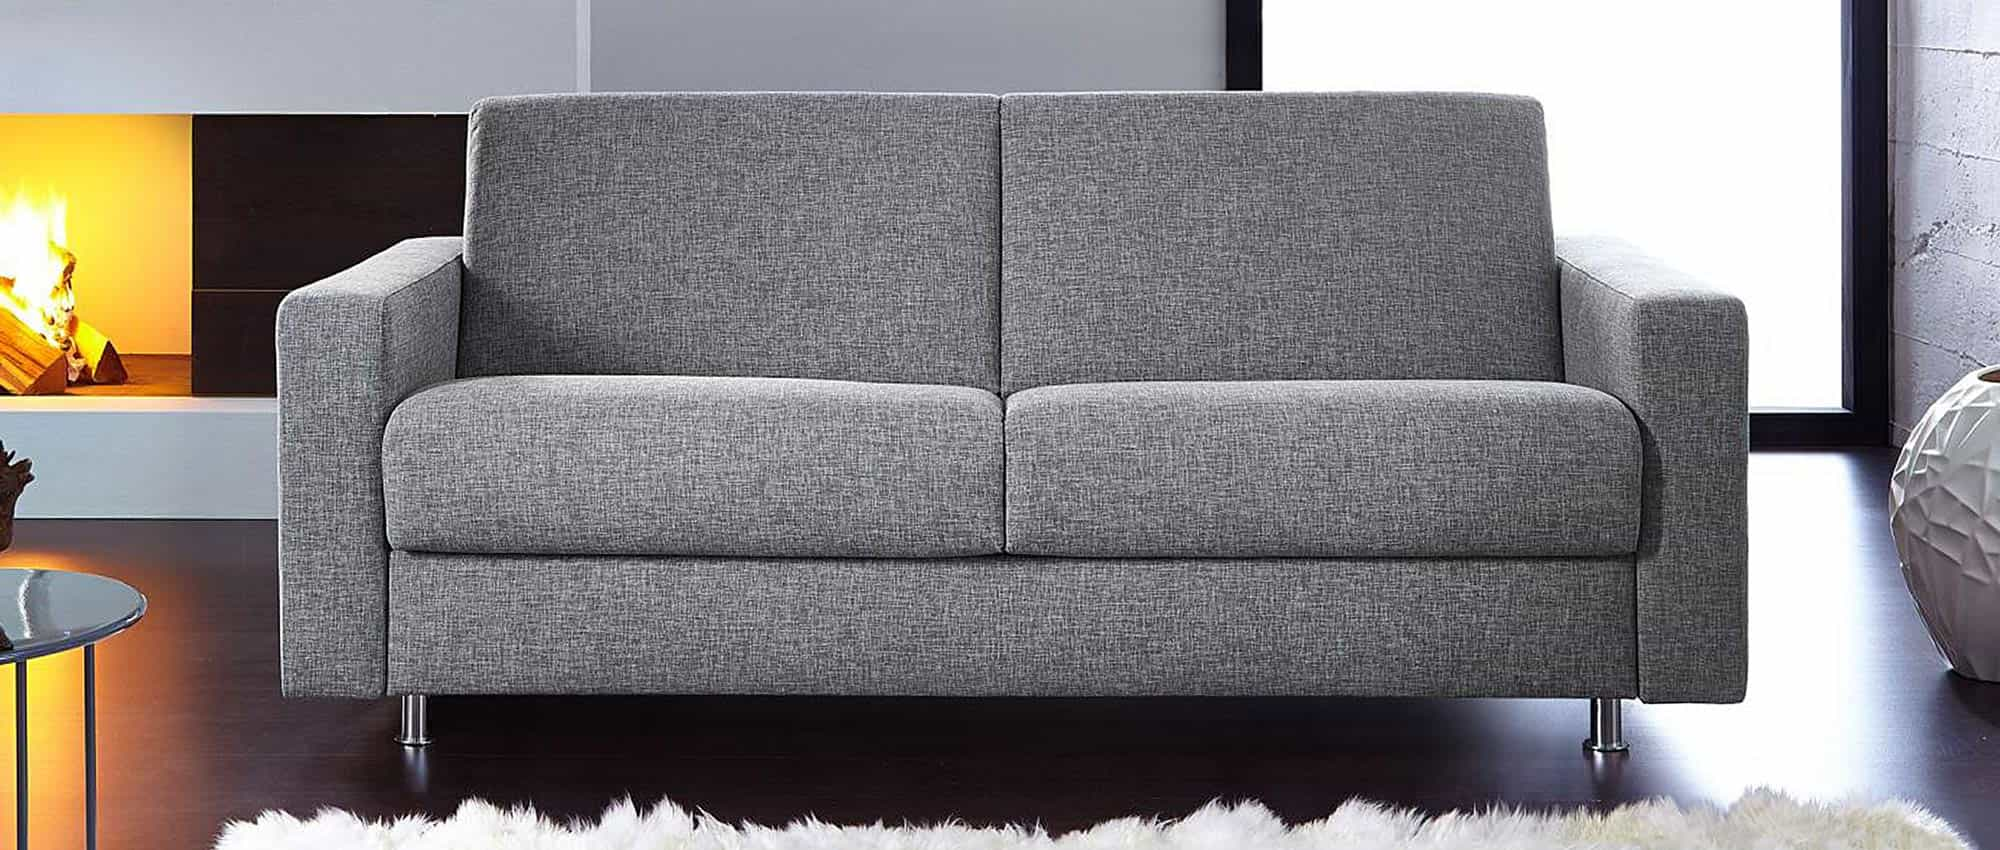 schlafsofa hamburg deluxe mit lattenrost und matratze von. Black Bedroom Furniture Sets. Home Design Ideas